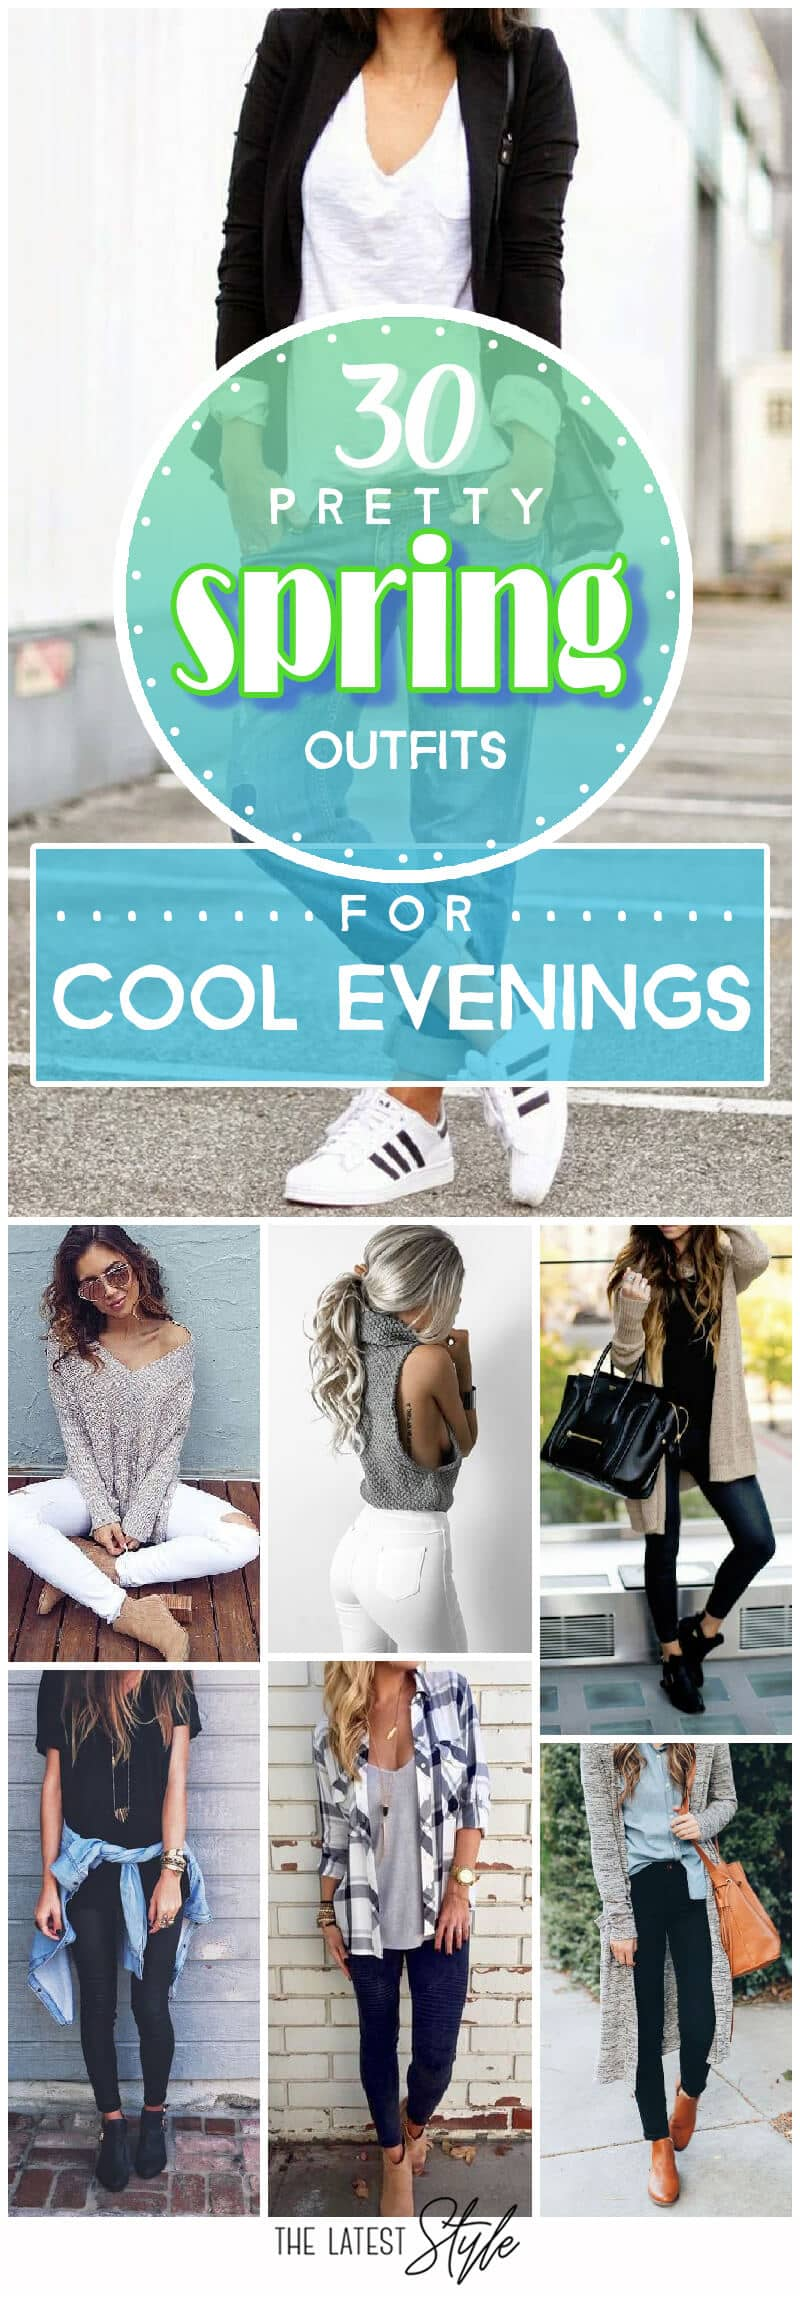 Spring Outfits for Cold Nights